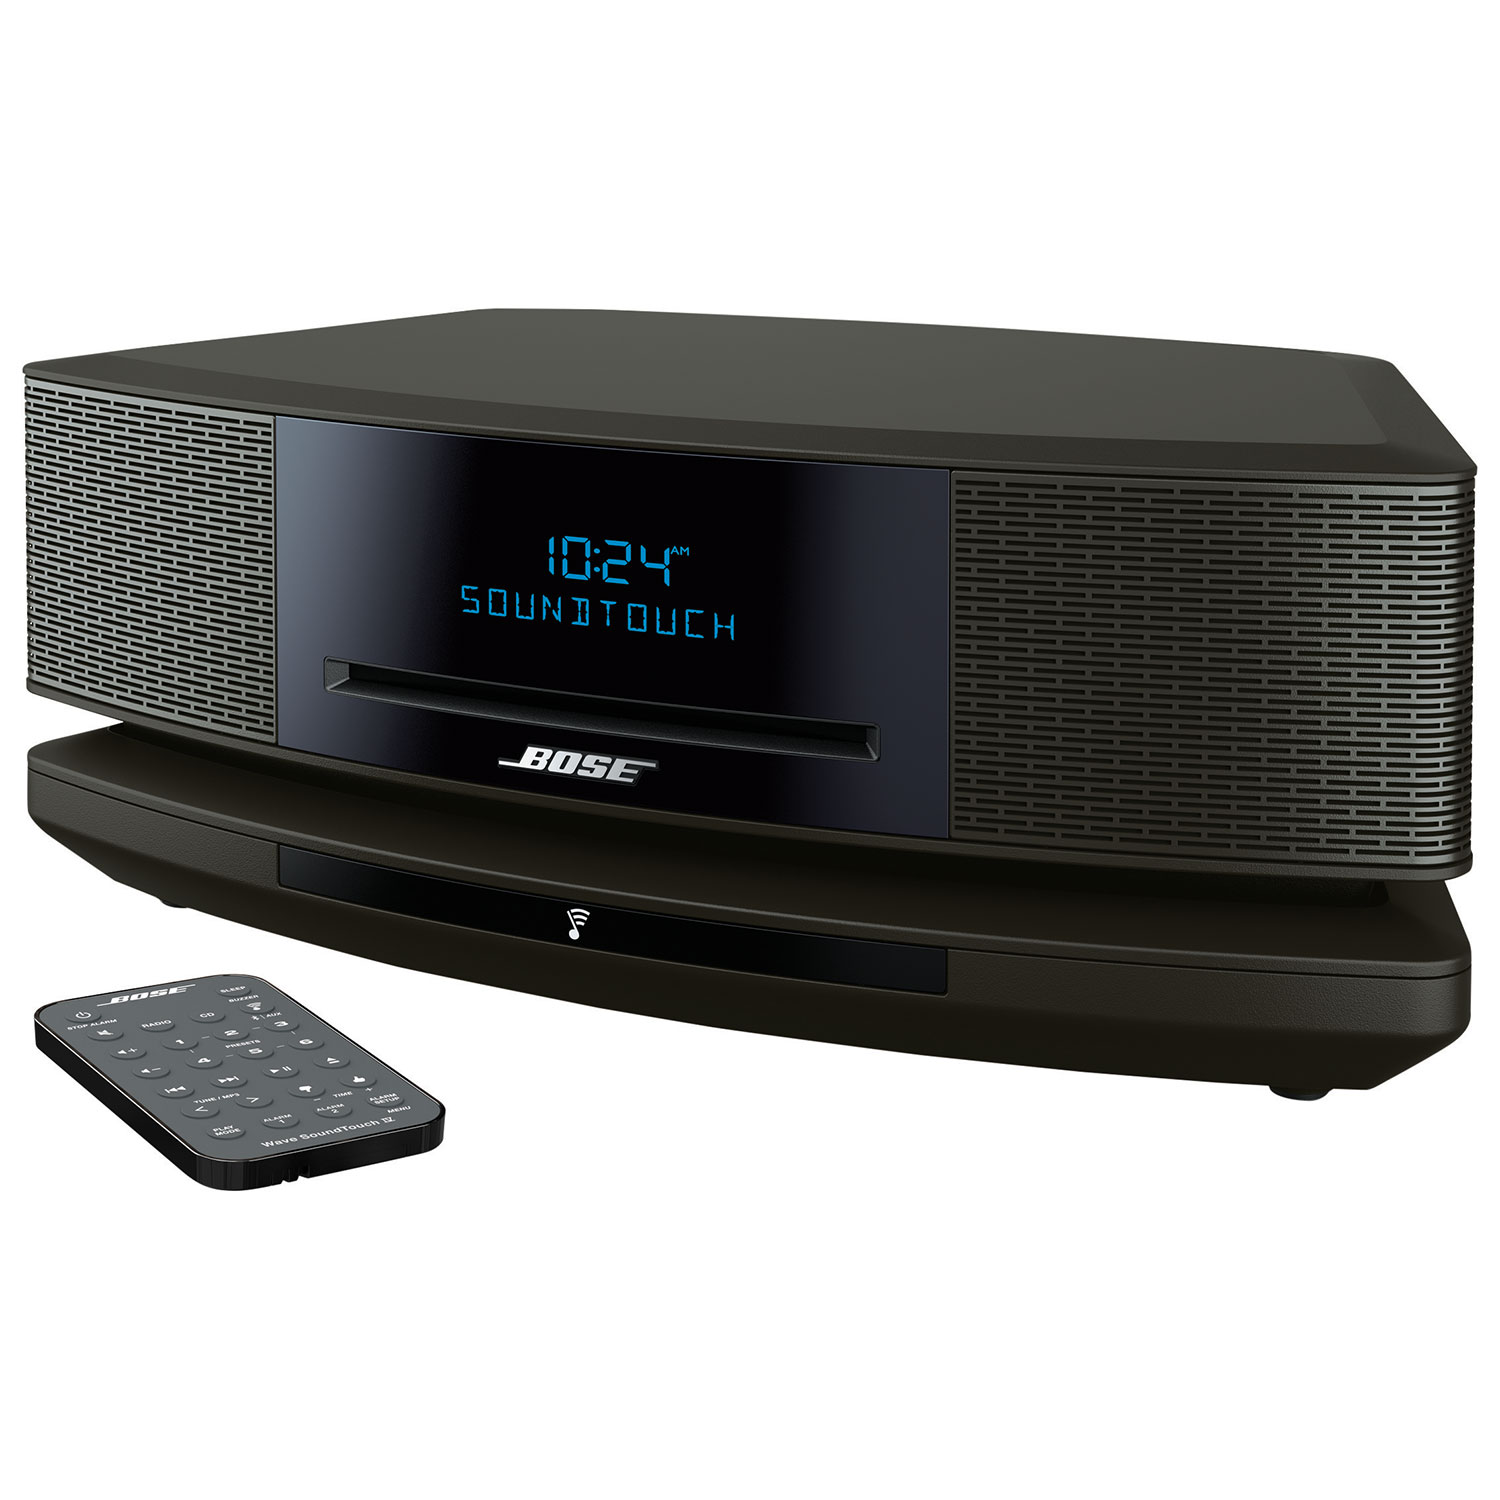 Bose Wave SoundTouch IV Wireless Multi-Room Music System - Black   Wireless  Multi-Room Speakers - Best Buy Canada 2c23472735324